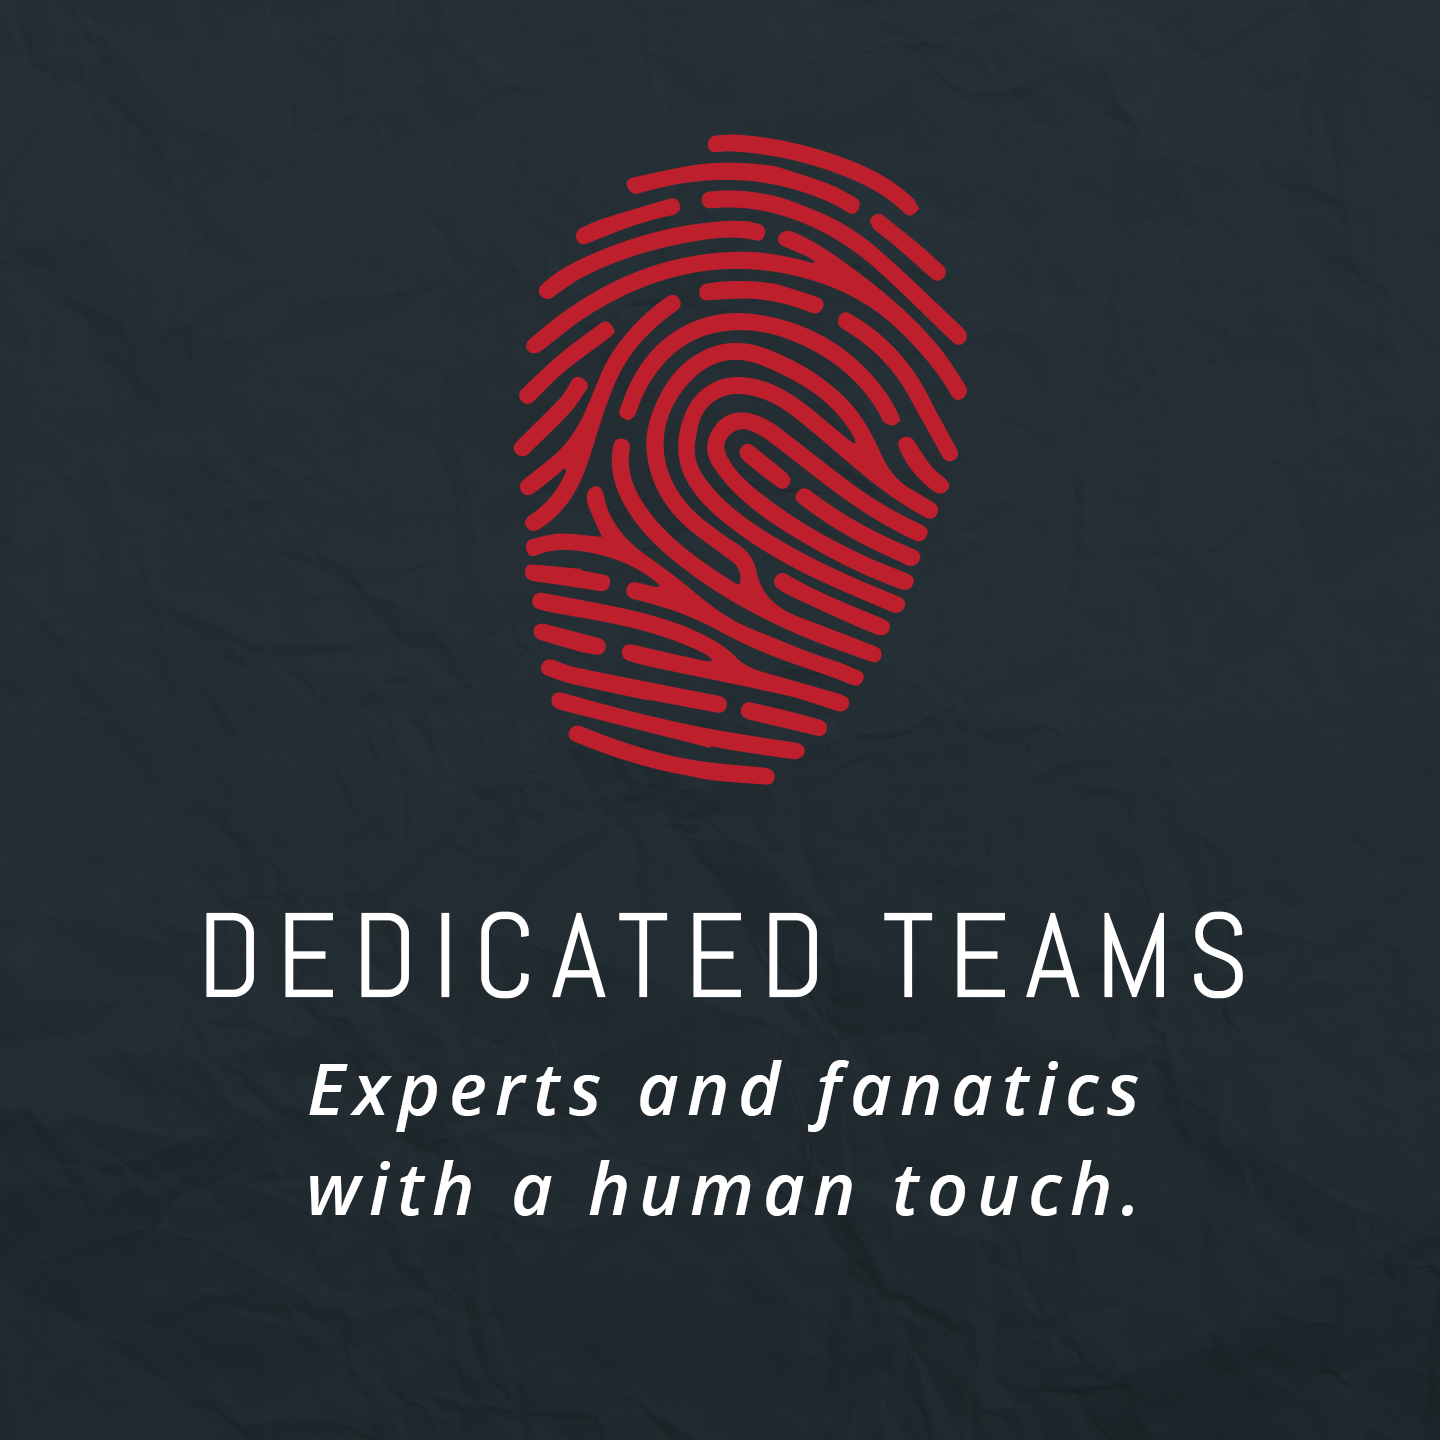 Experts and fanatics with a human touch.